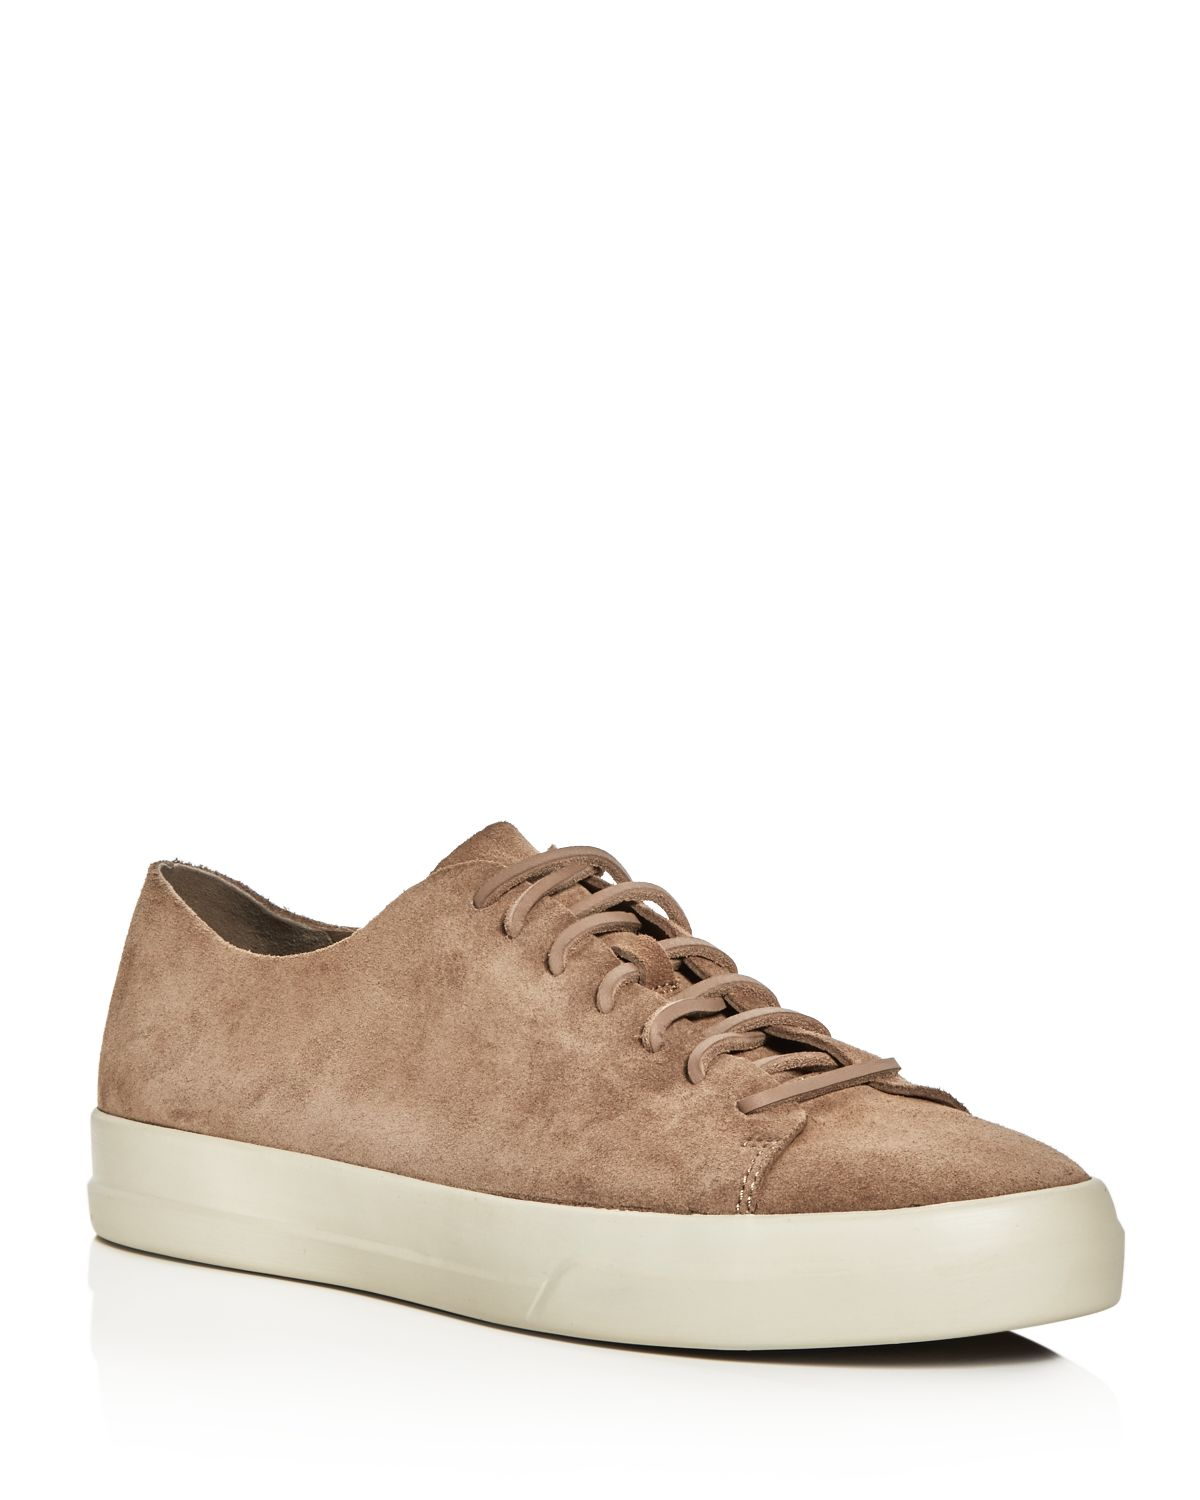 Vince Men's Copeland Suede Lace Up Sneakers